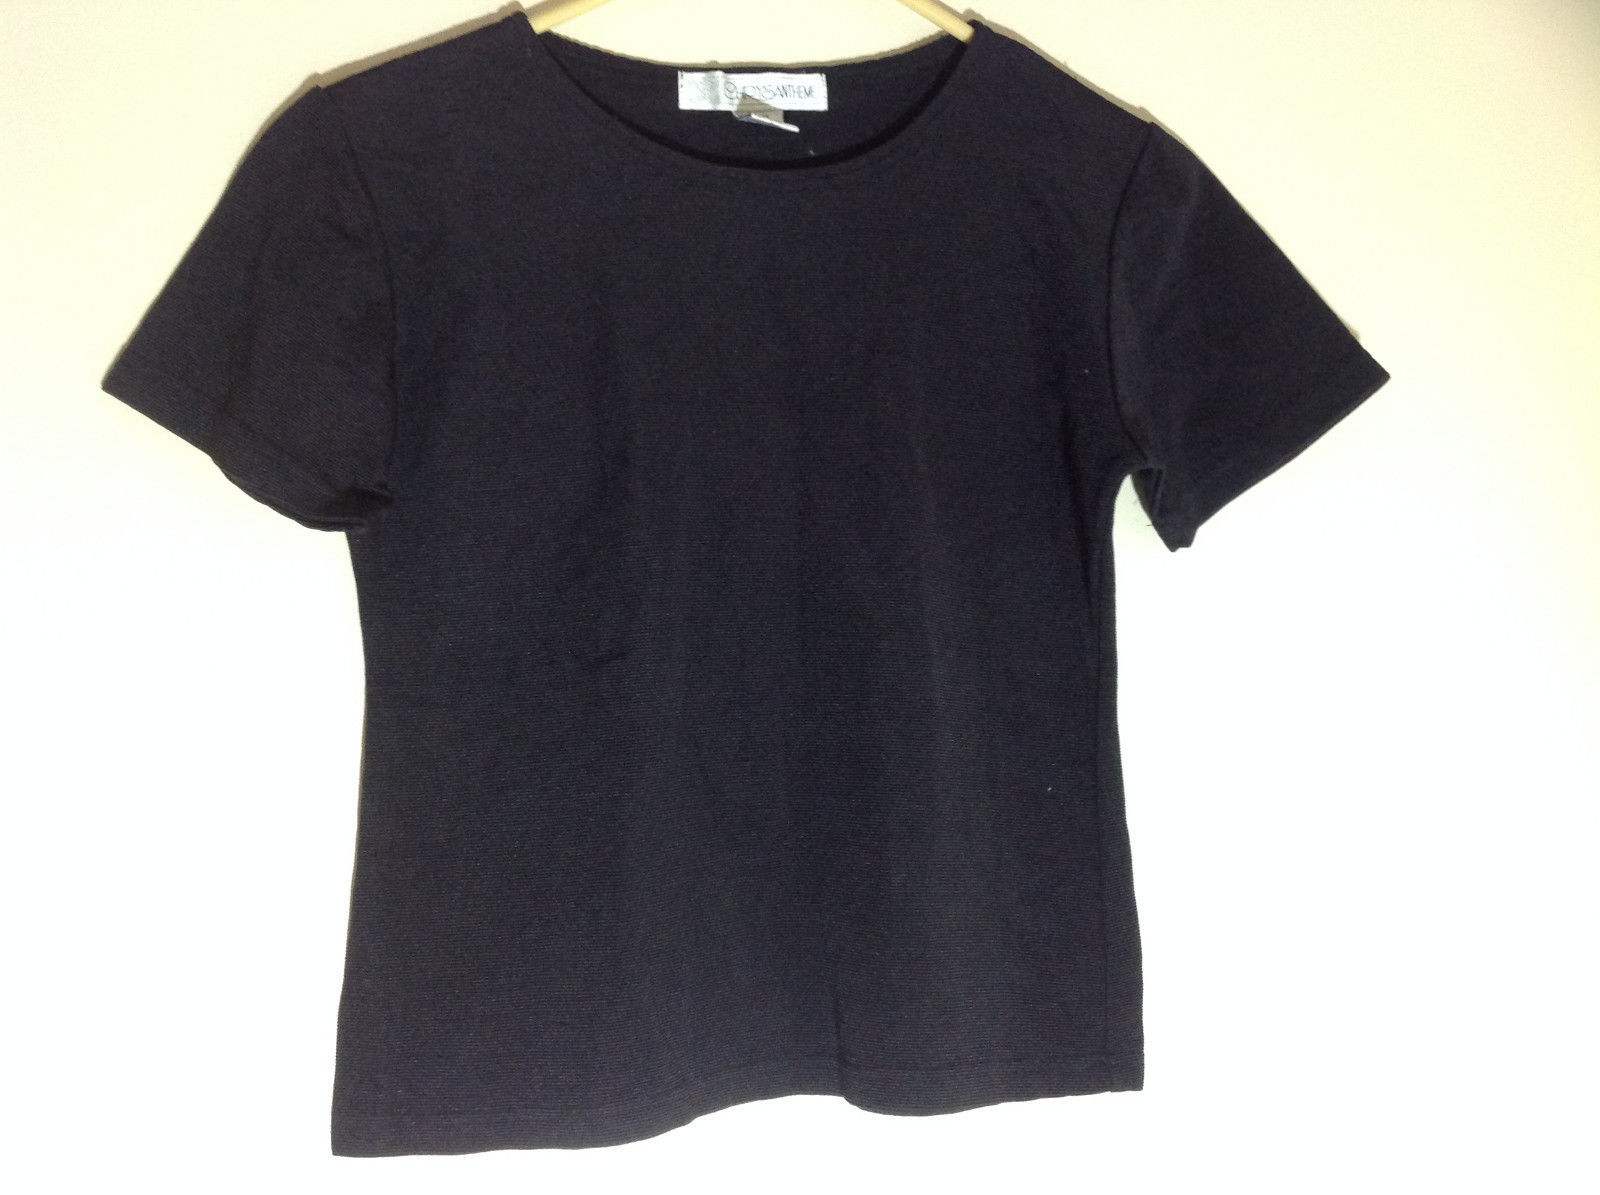 Chrysantheme Black Crew Neck Short Sleeve Shirt Stretchy Material Size Small